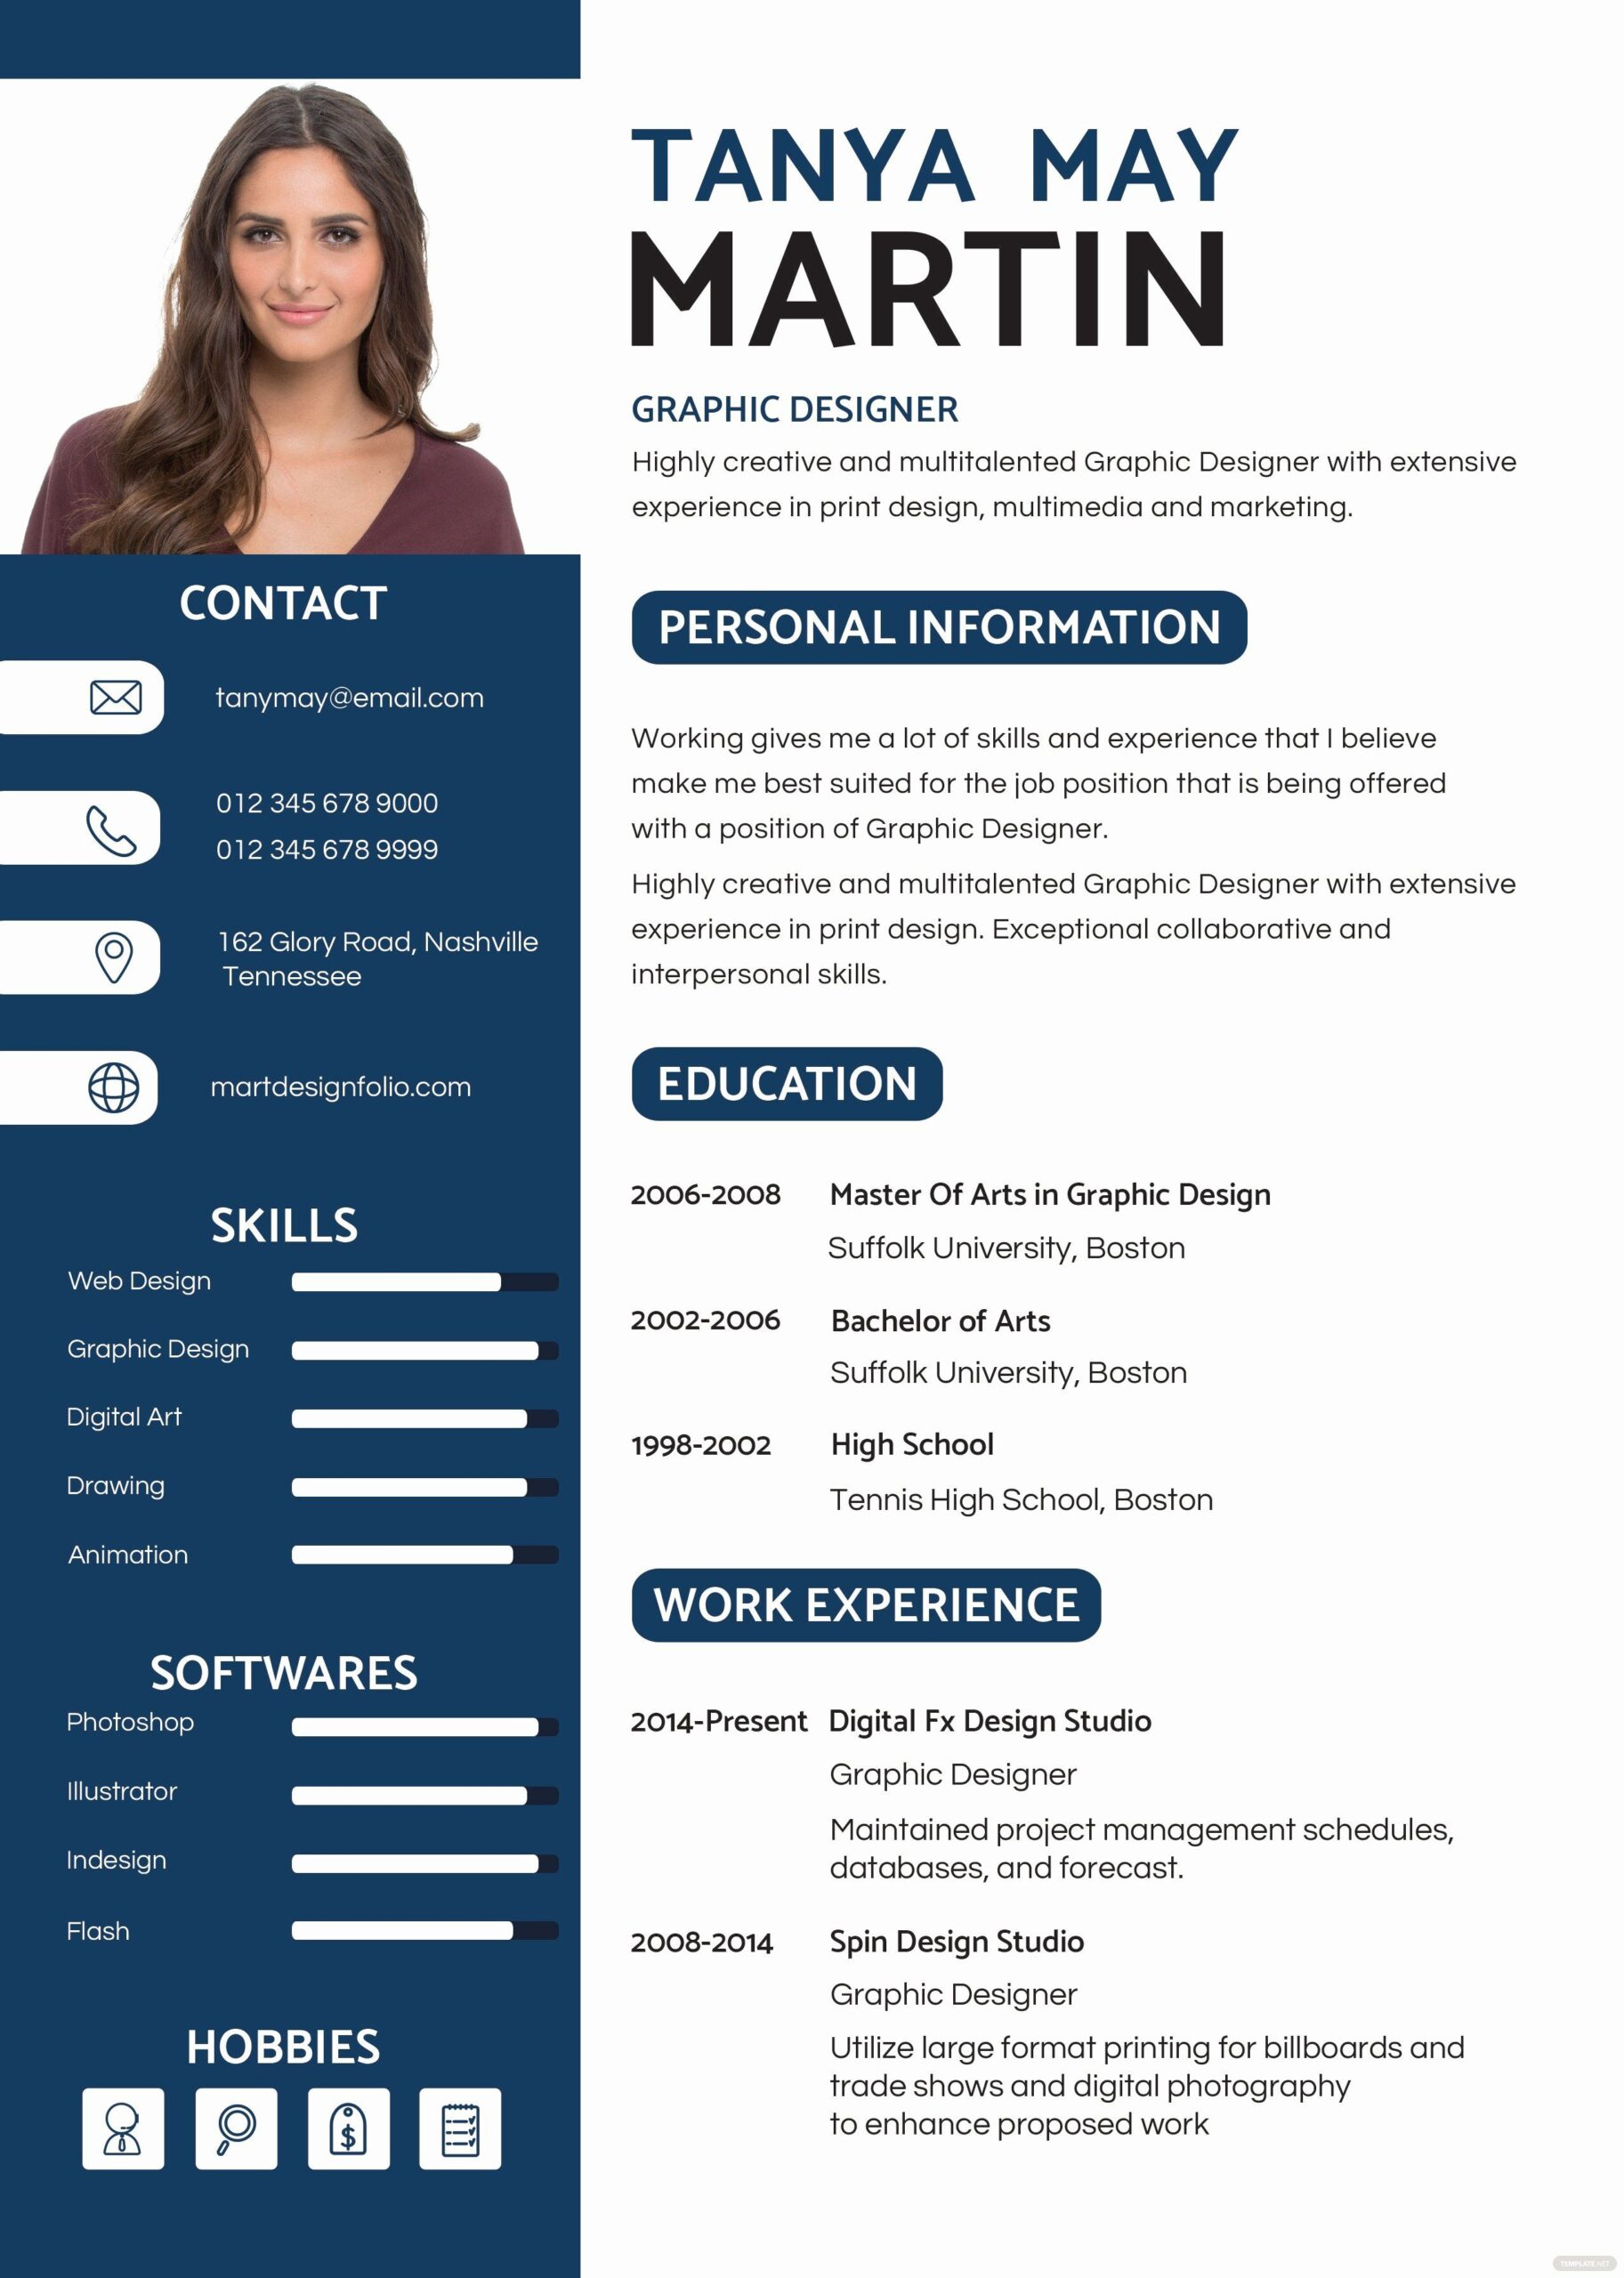 resume with template luxury free professional and cv in ms word kreatif desain graphic Resume Professional Graphic Designer Resume